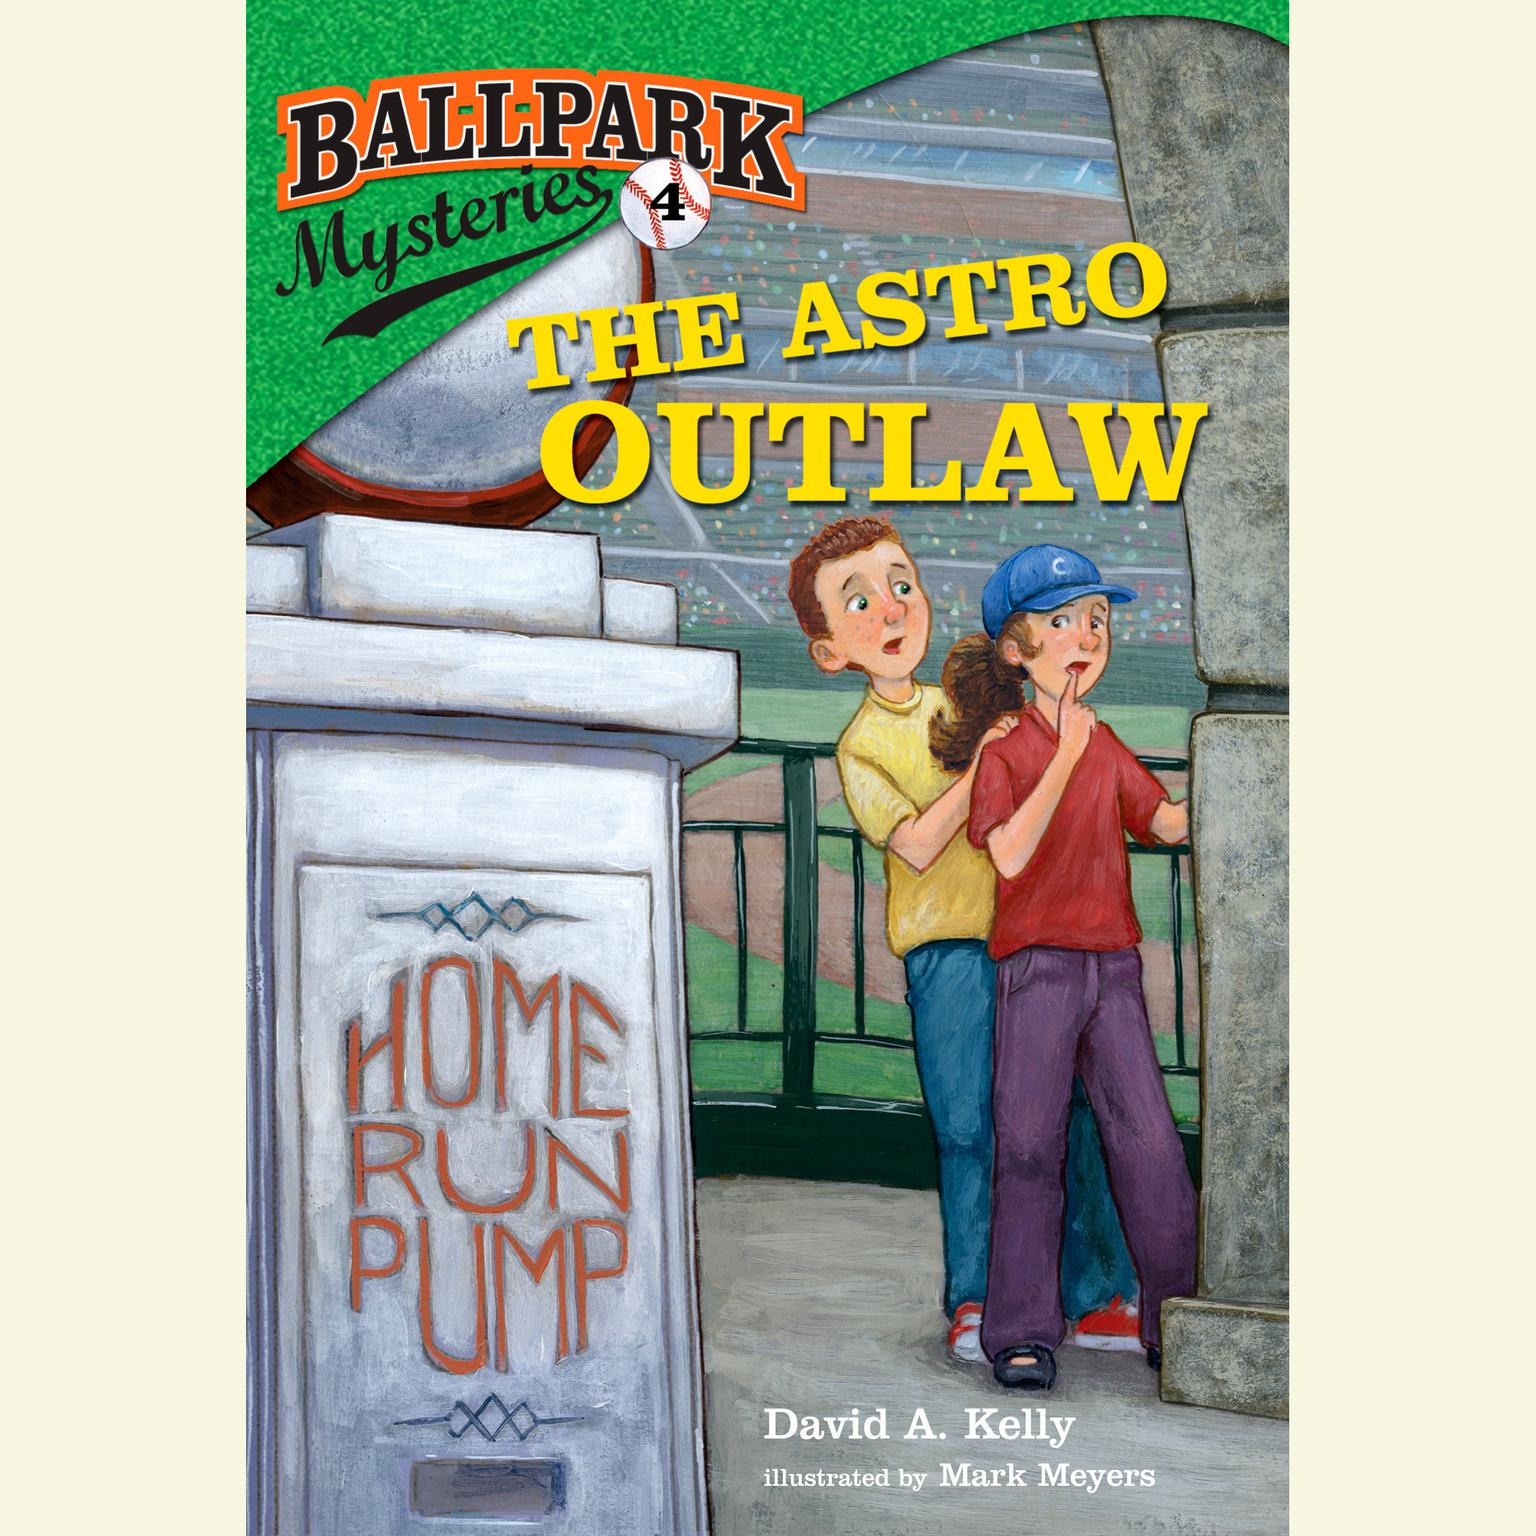 Printable Ballpark Mysteries #4: The Astro Outlaw Audiobook Cover Art